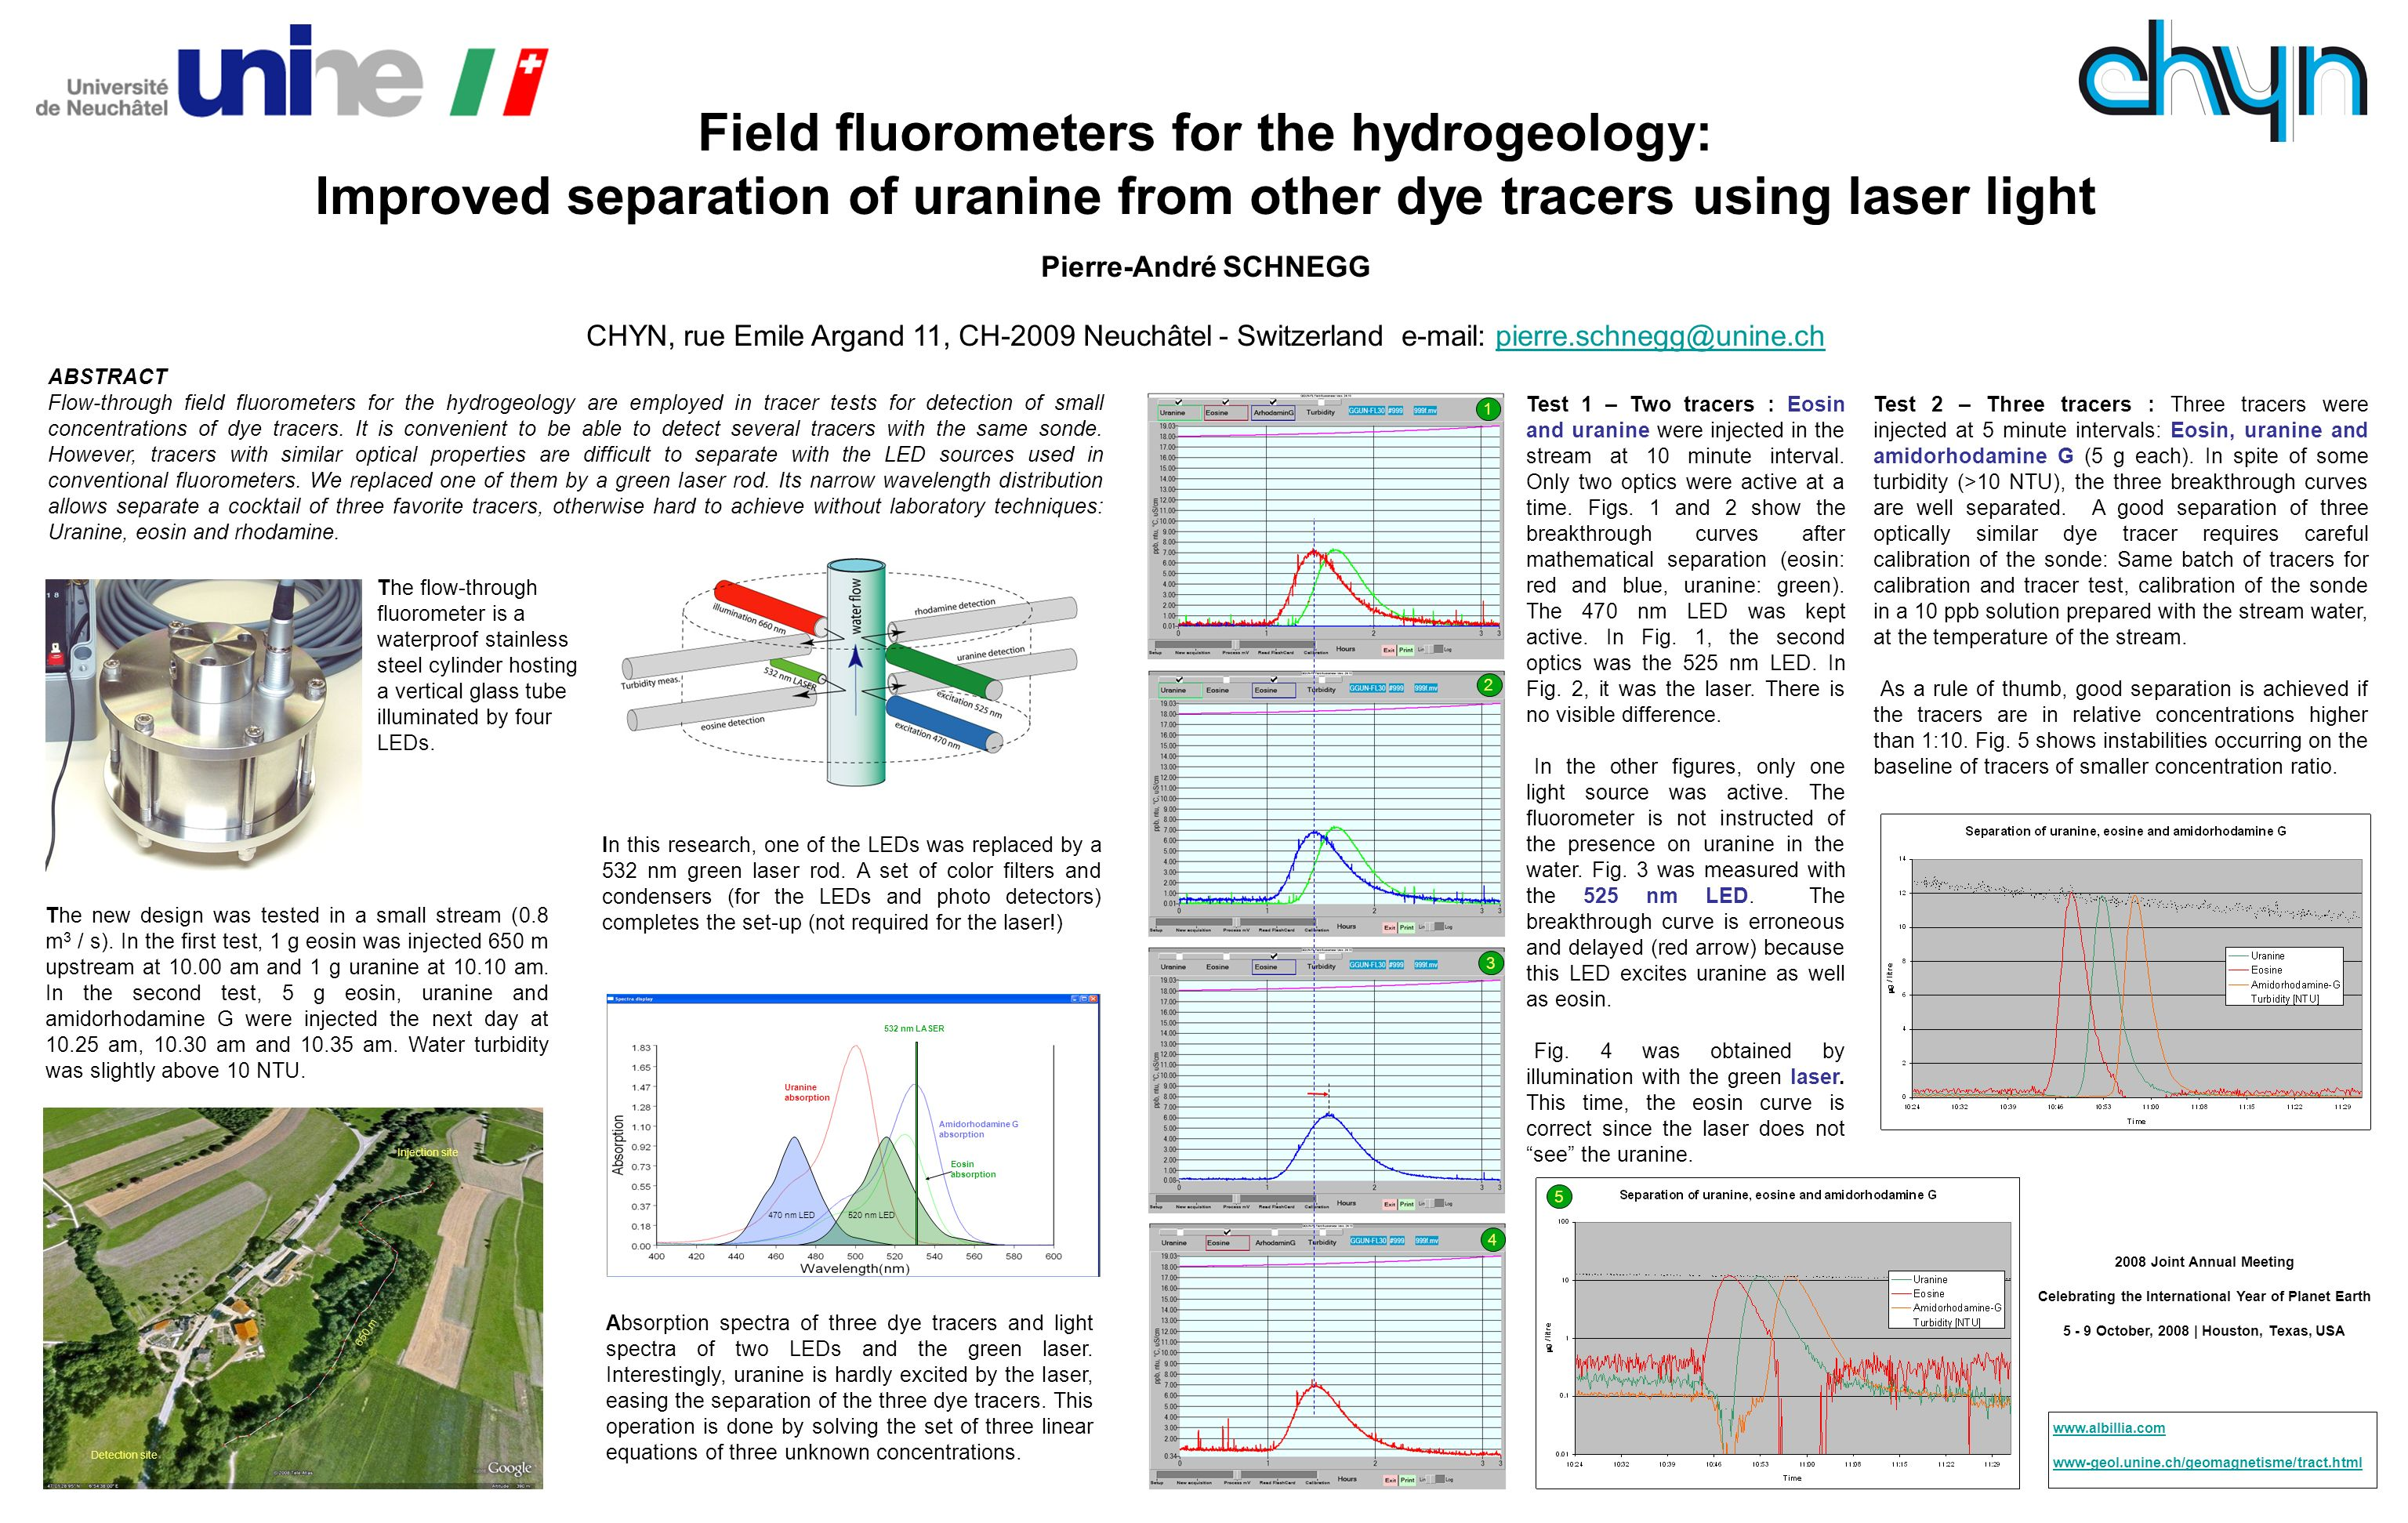 Field fluorometers for the hydrogeology: Improved separation of uranine from other dye tracers using laser light Pierre-André SCHNEGG CHYN, rue Emile Argand 11, CH-2009 Neuchâtel - Switzerland   ABSTRACT Flow-through field fluorometers for the hydrogeology are employed in tracer tests for detection of small concentrations of dye tracers.